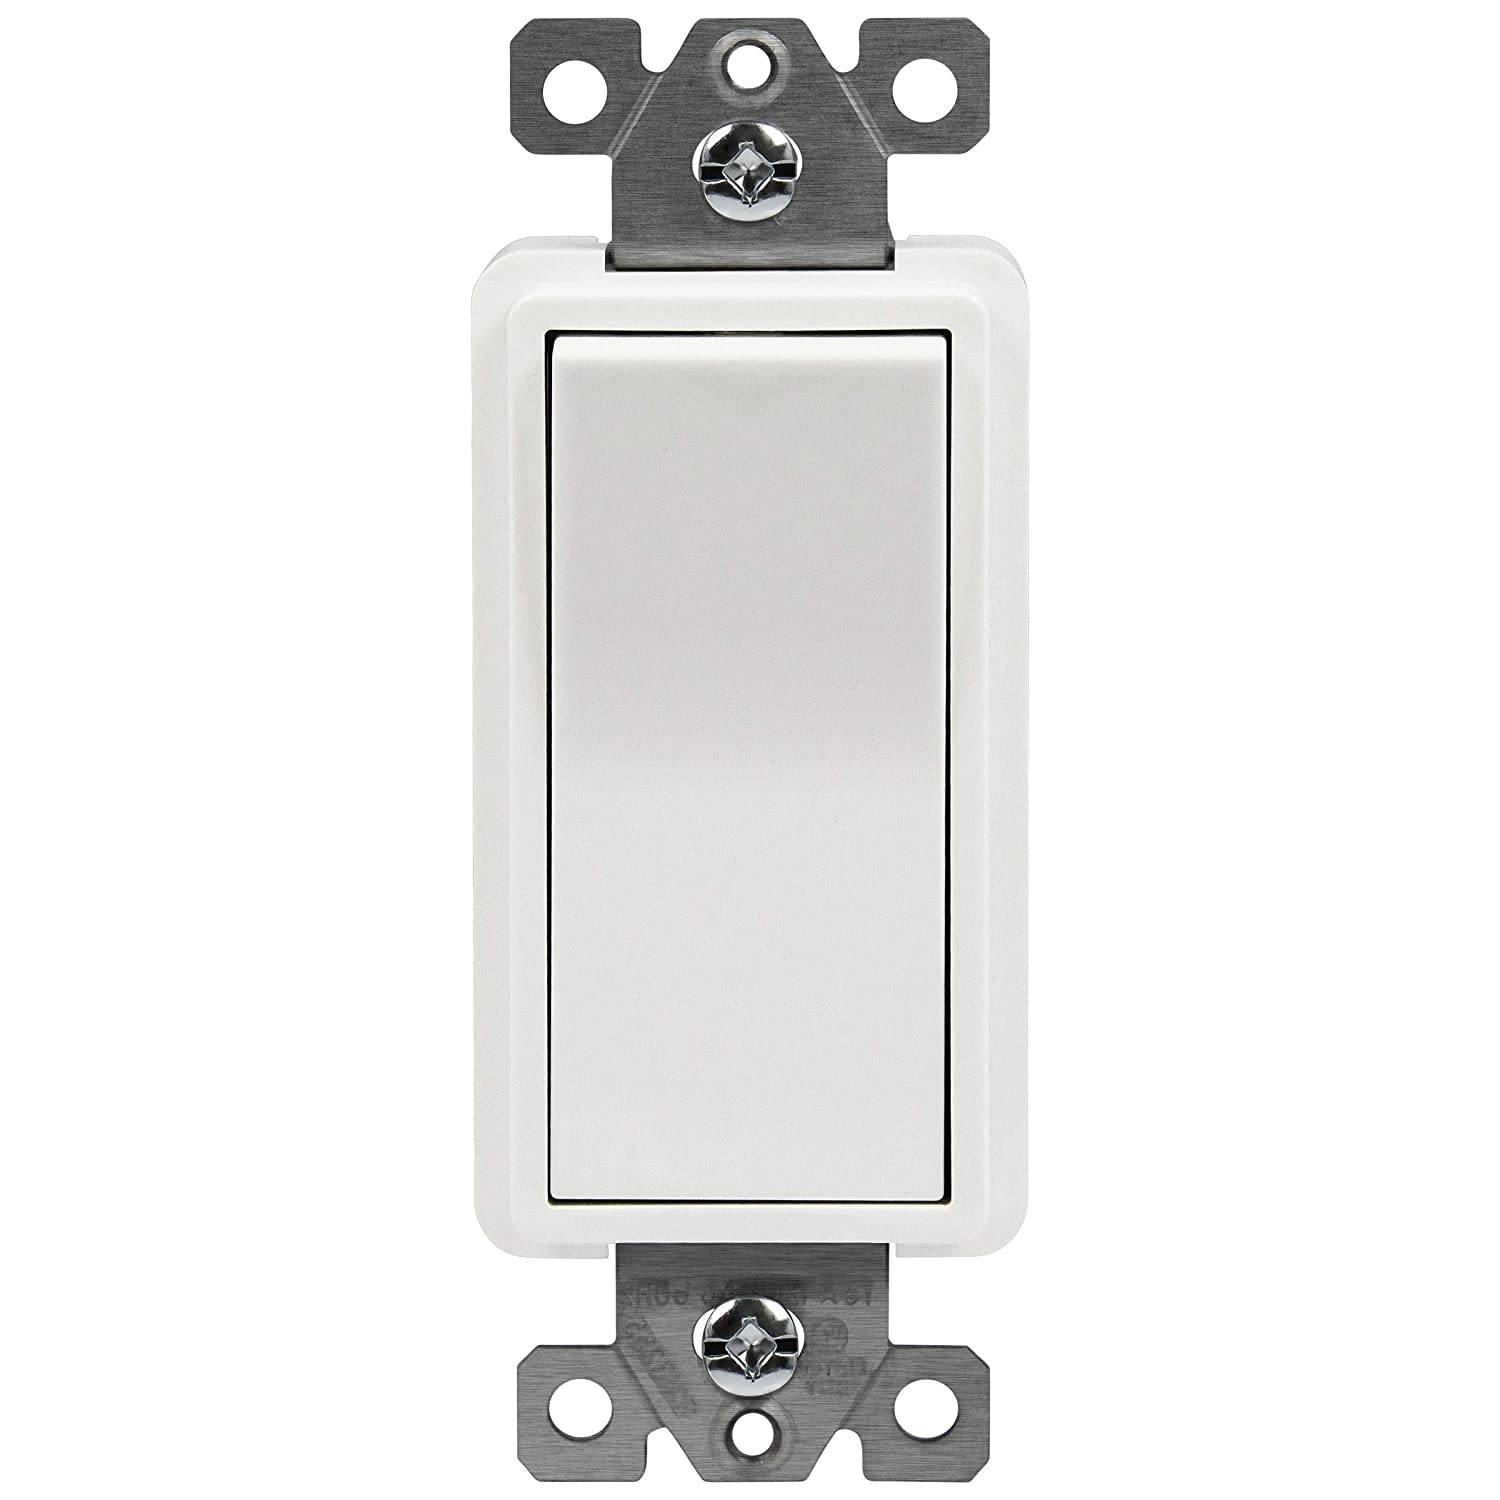 Rocker Light Switch >> Enerlites 4 Way Decorator Paddle Rocker Light Switch Clamp Down Wiring Grounding Screw Residential Grade 15a 120v 277v Ul Listed 94150 W White